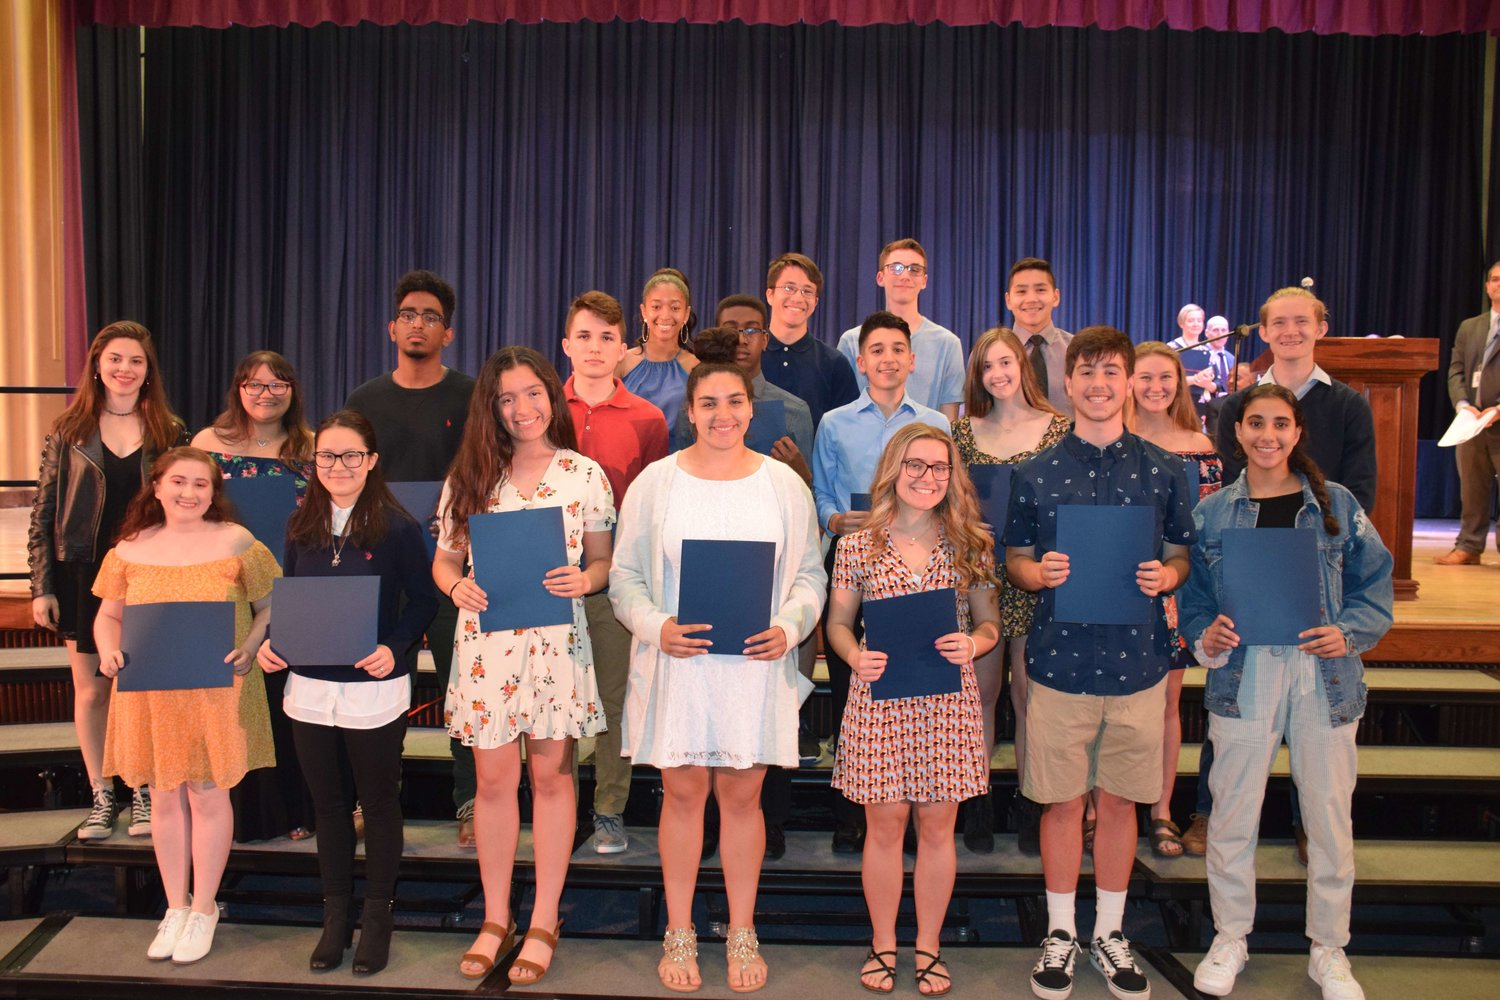 Students from W.T. Clarke High School were recognized for music excellence during the East Meadow School District's Music and Art Award ceremony on May 7.